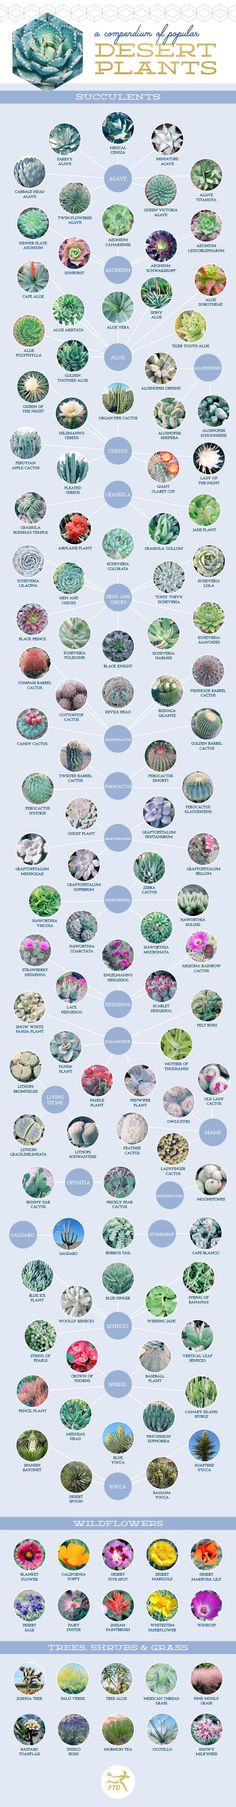 Don't know the name of your succulent or cactus plant? This great Compendium of 127 Stunning Desert Plants and Succulents may help. Image shared with permission of ftd.com . For help on propagating succulents please visit thegardeningcook.com #Succulents